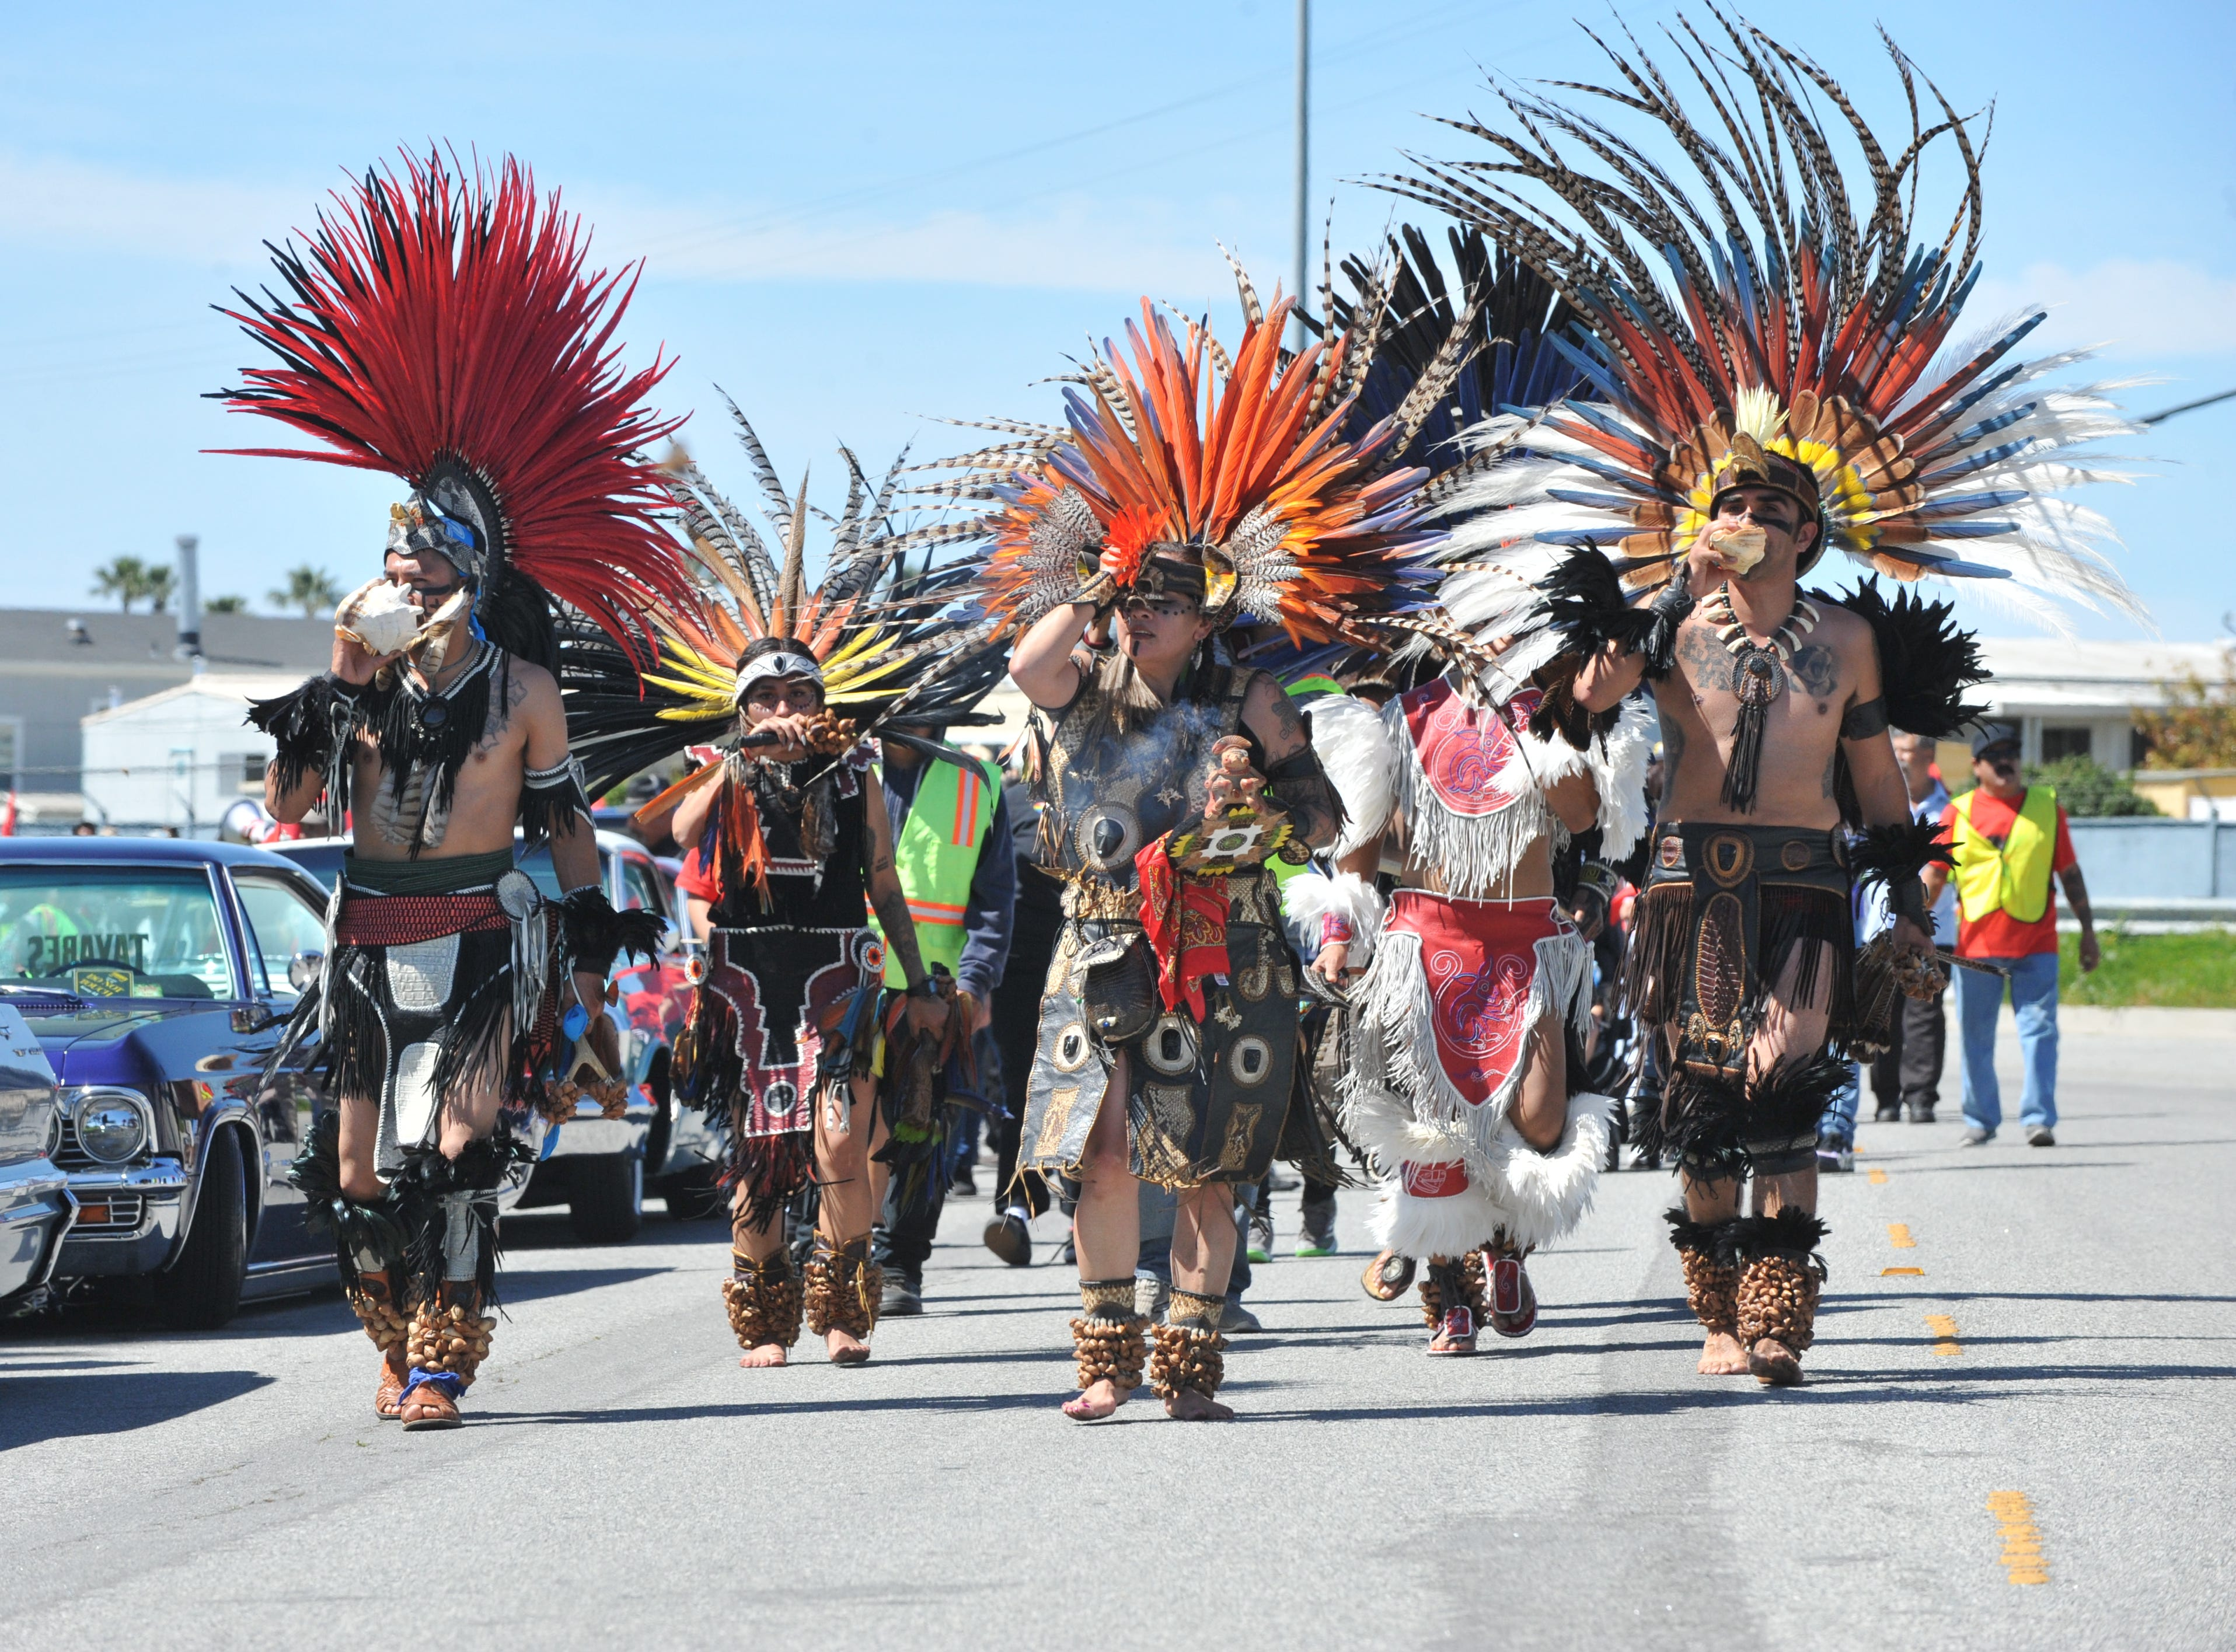 Aztec dancers led the United Farm Workers' march in Salinas on March 31, 2019, Cesar Chavez's birthday.